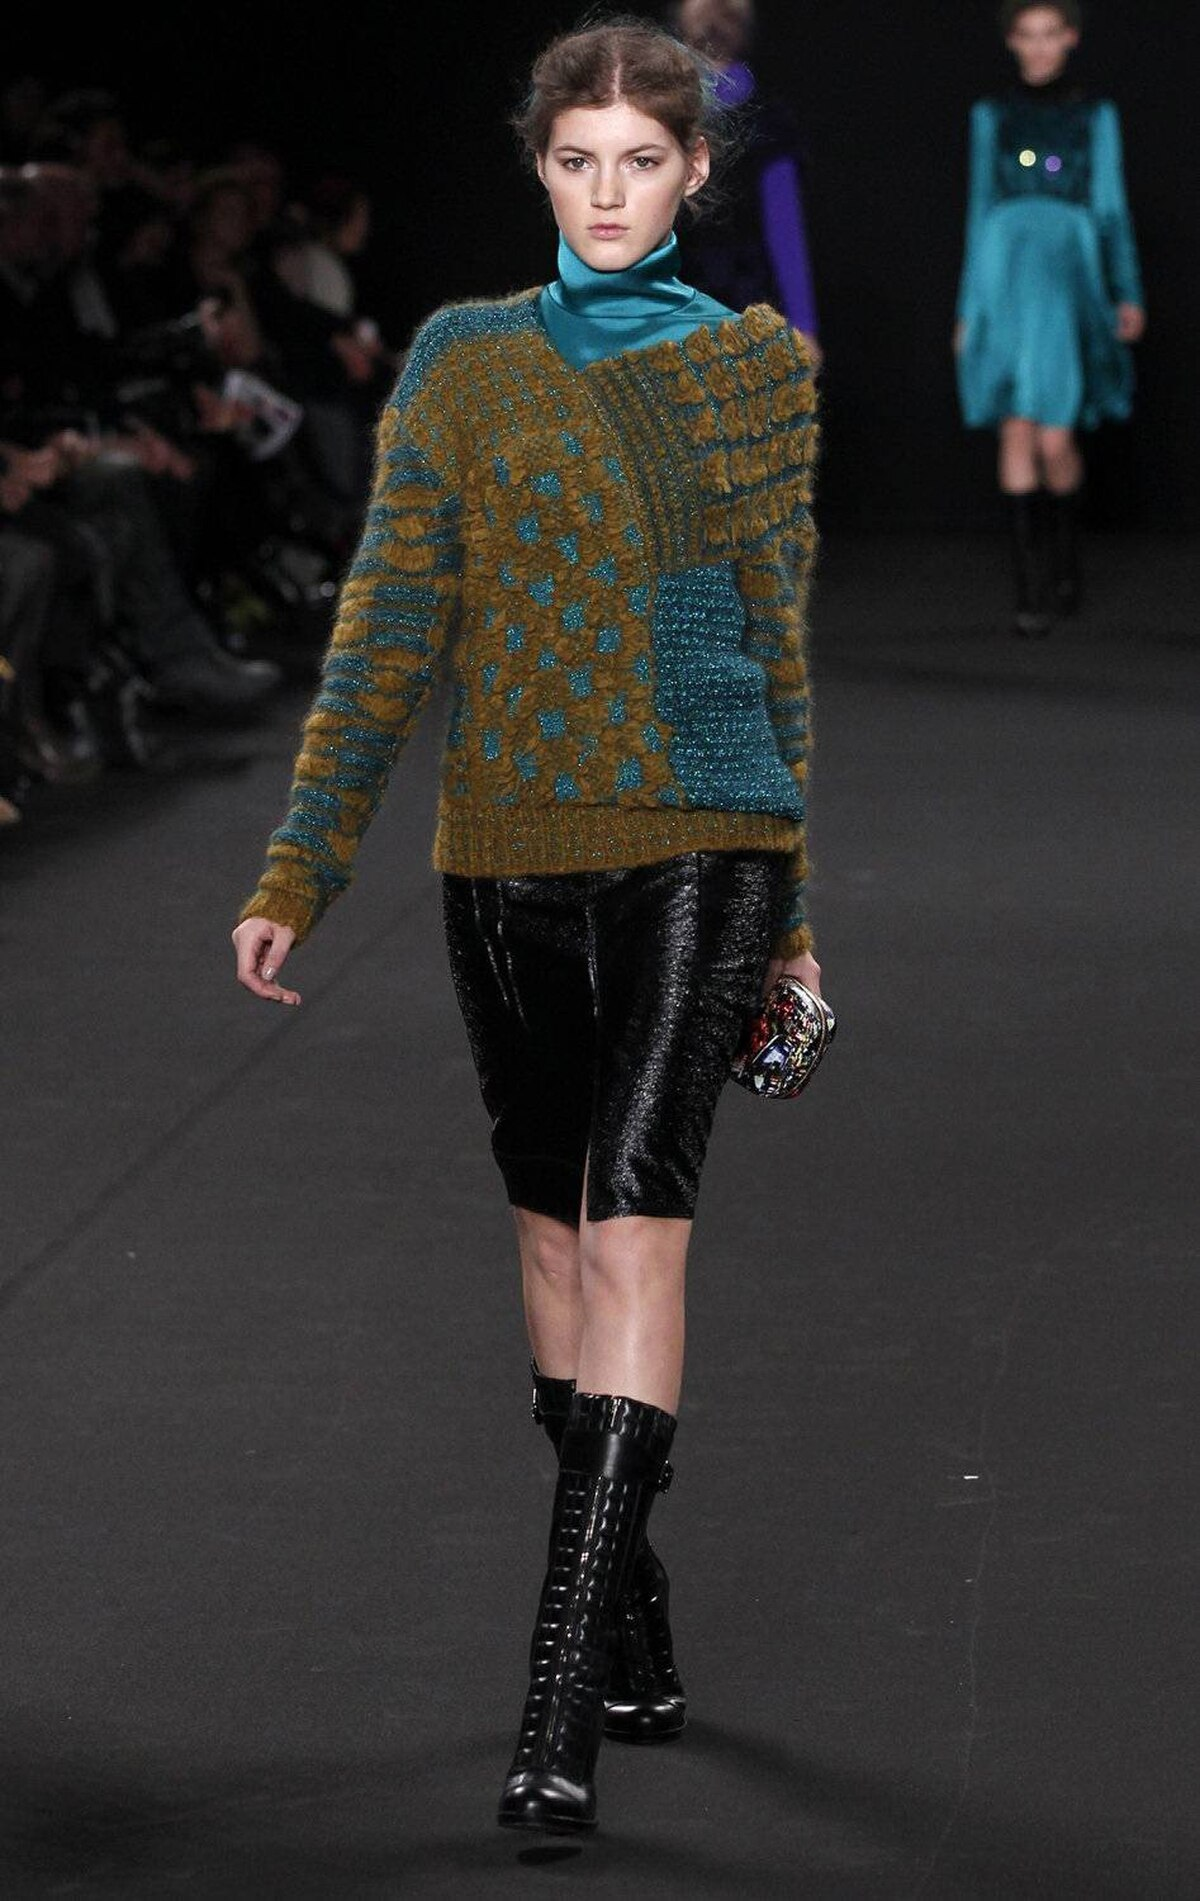 And … no. In fact, the best-case scenario for this sweater is that it stays a 'runway showpiece' (translation: never makes it to stores).